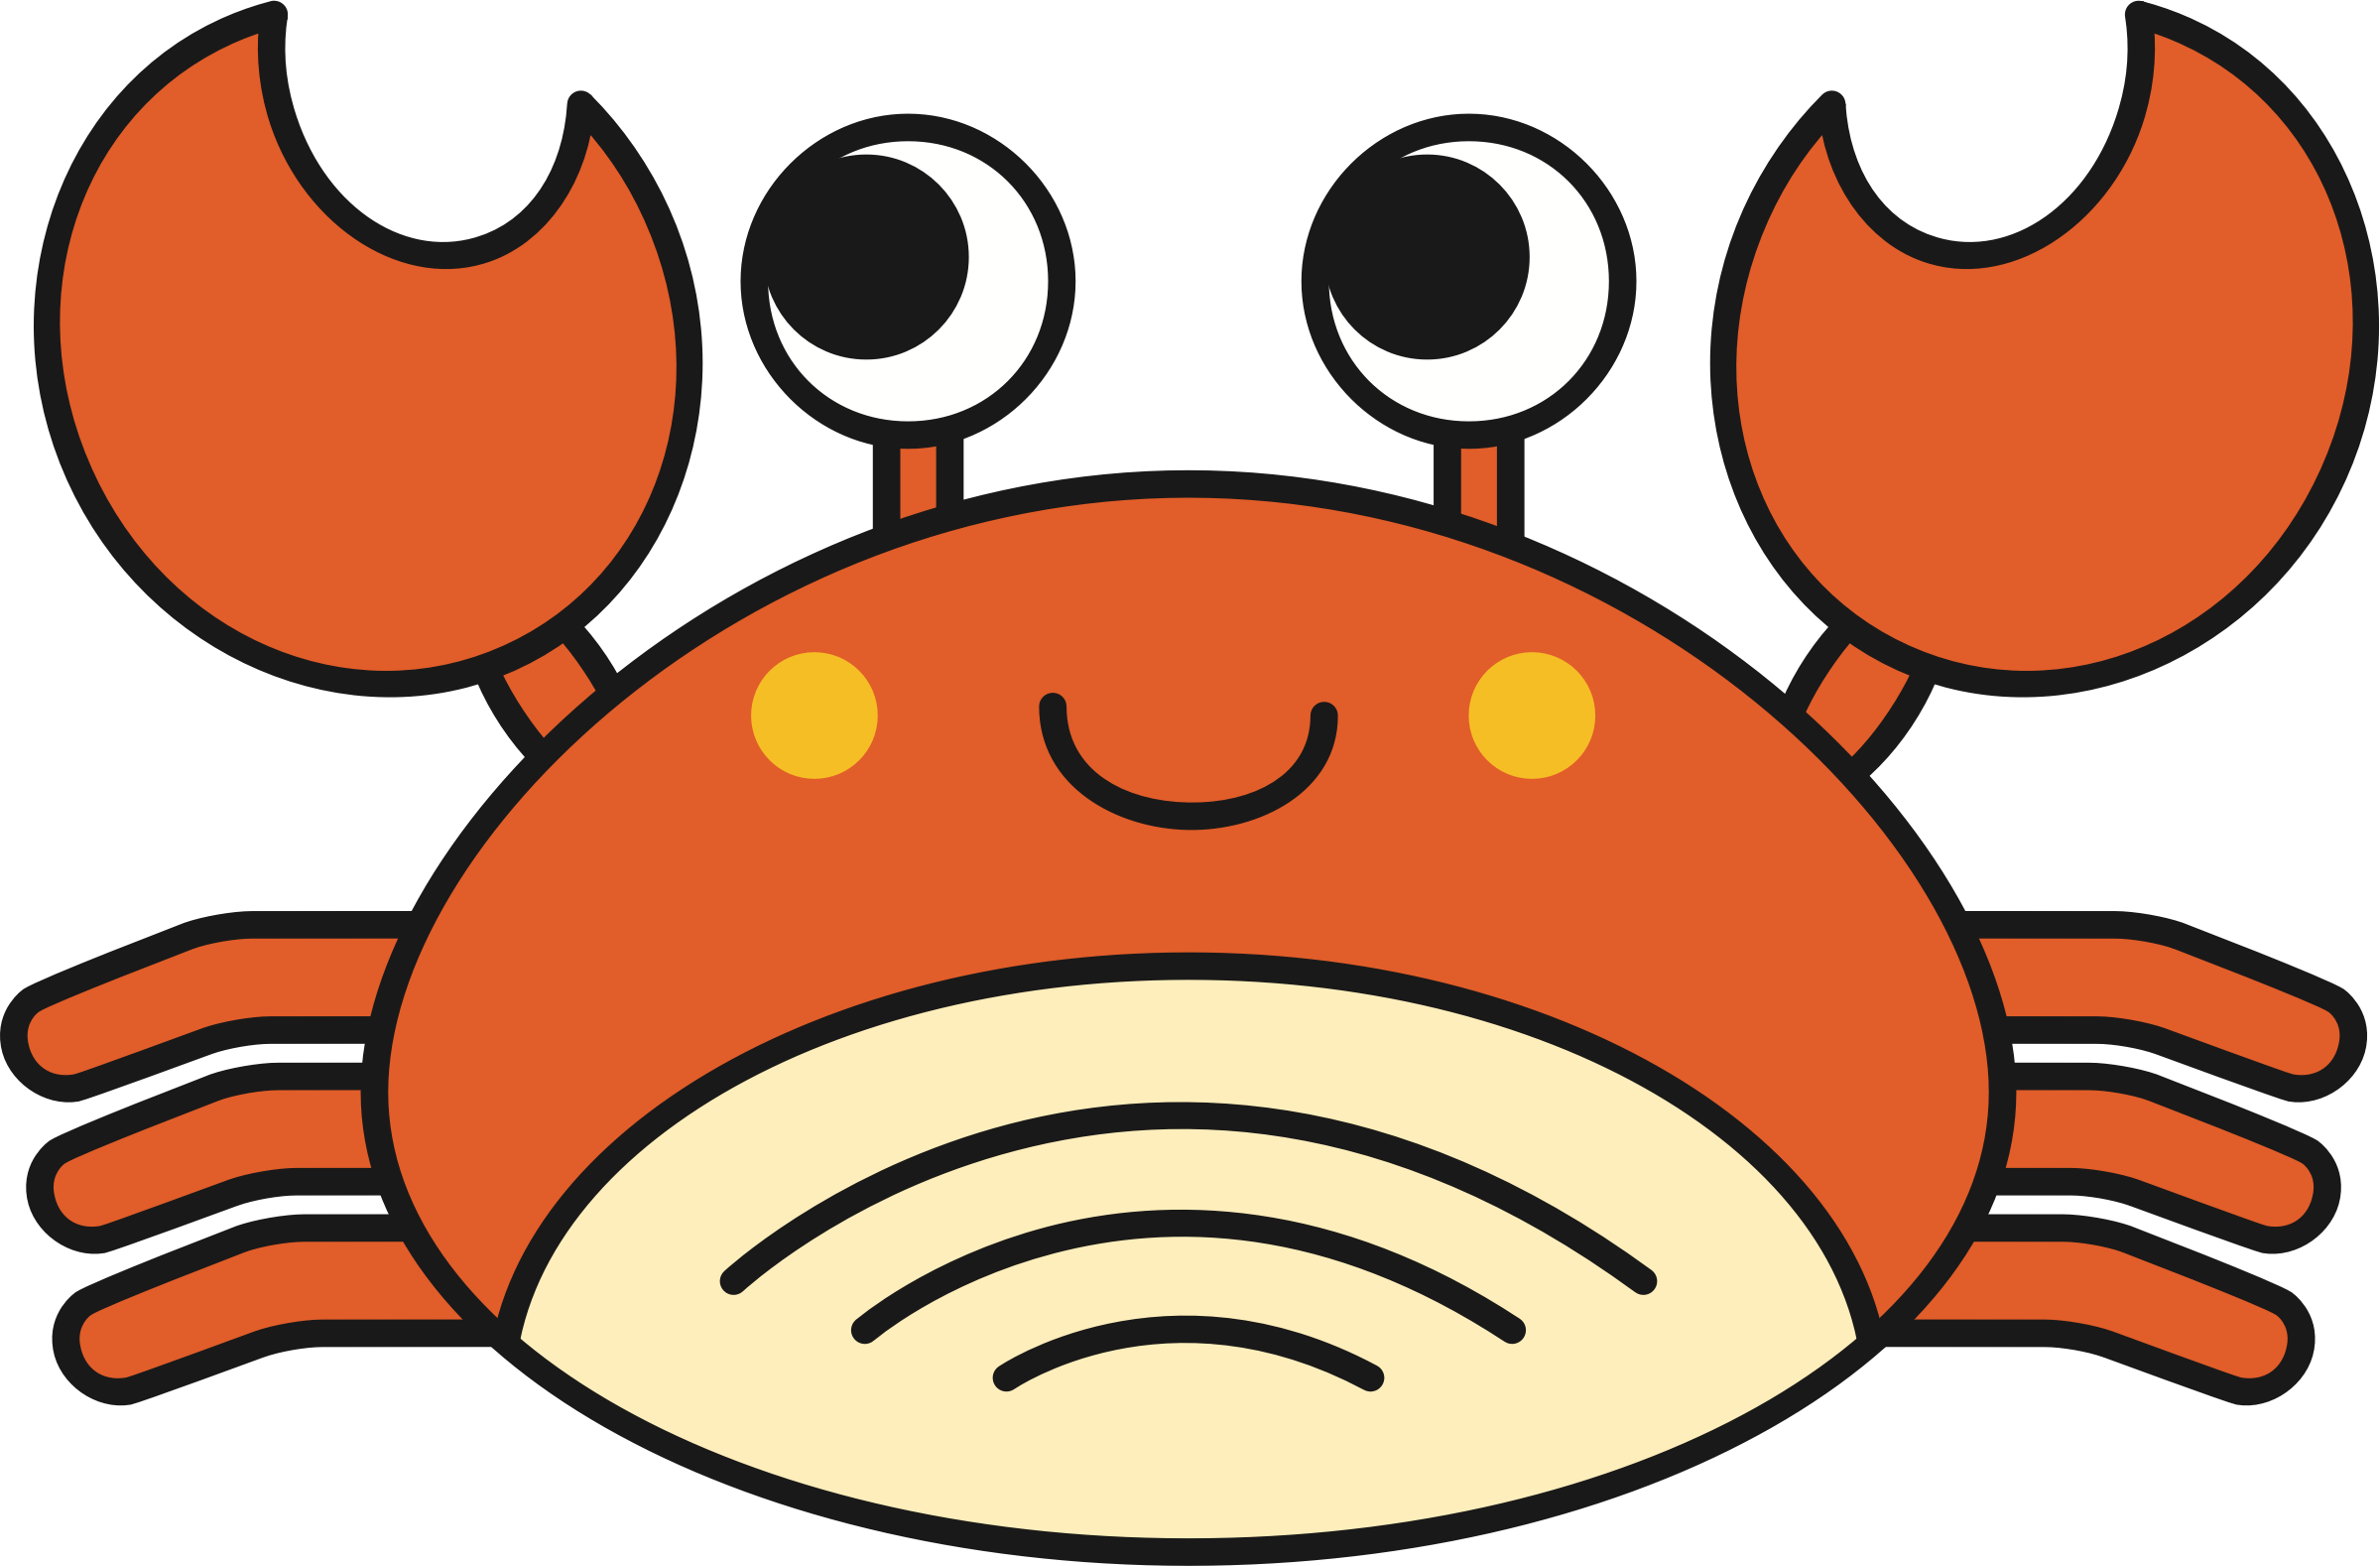 Crab clipart evil. Cute icons png free